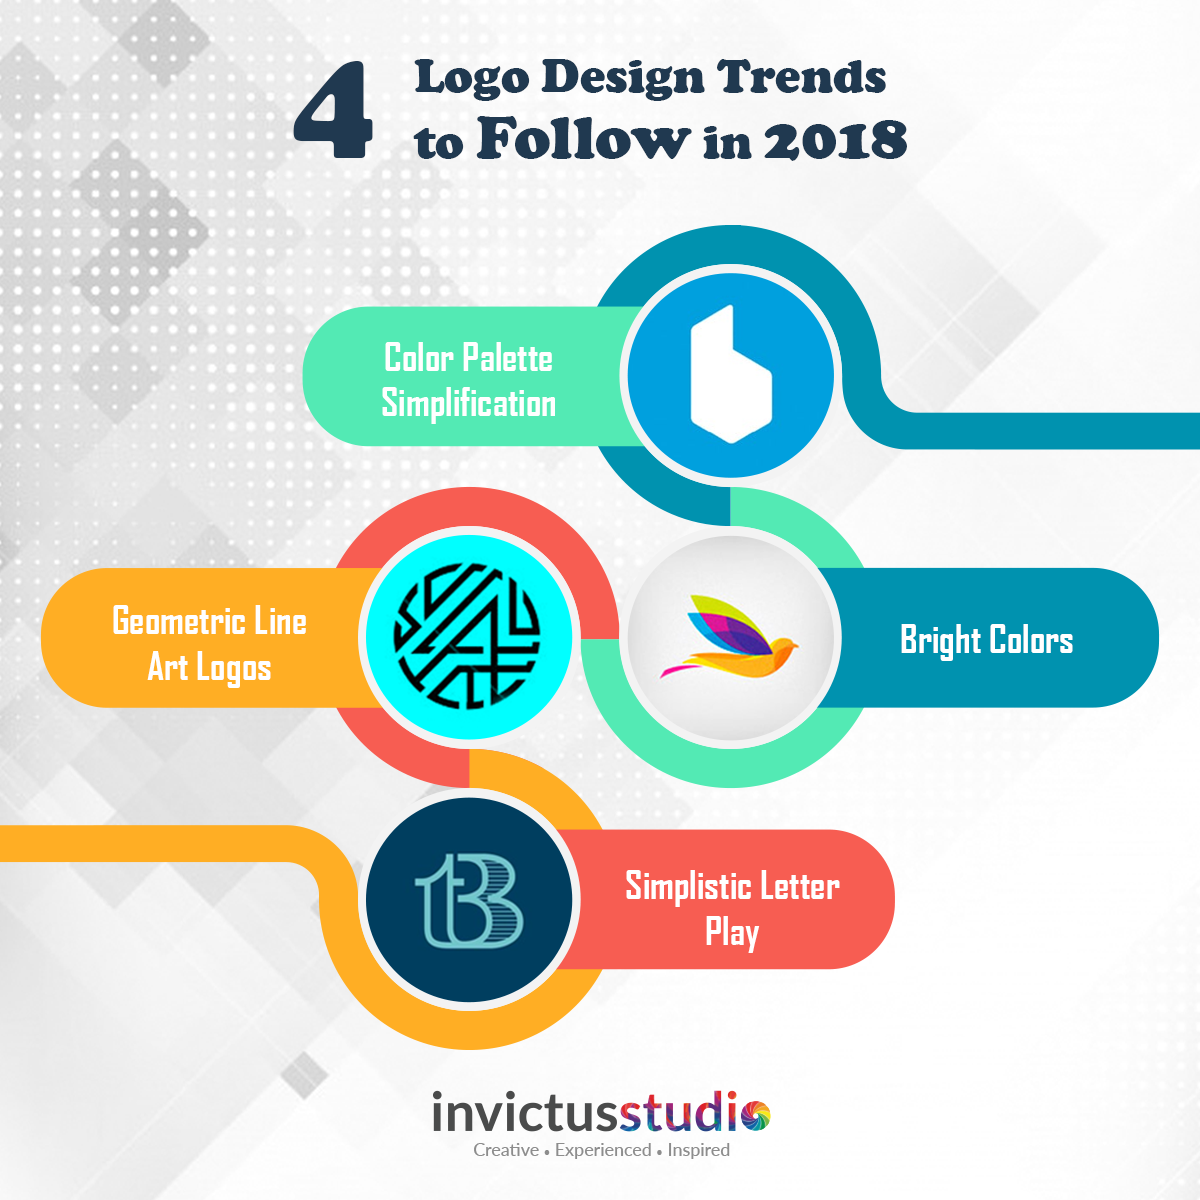 4 Logo Design Trends that are worth following in 2018